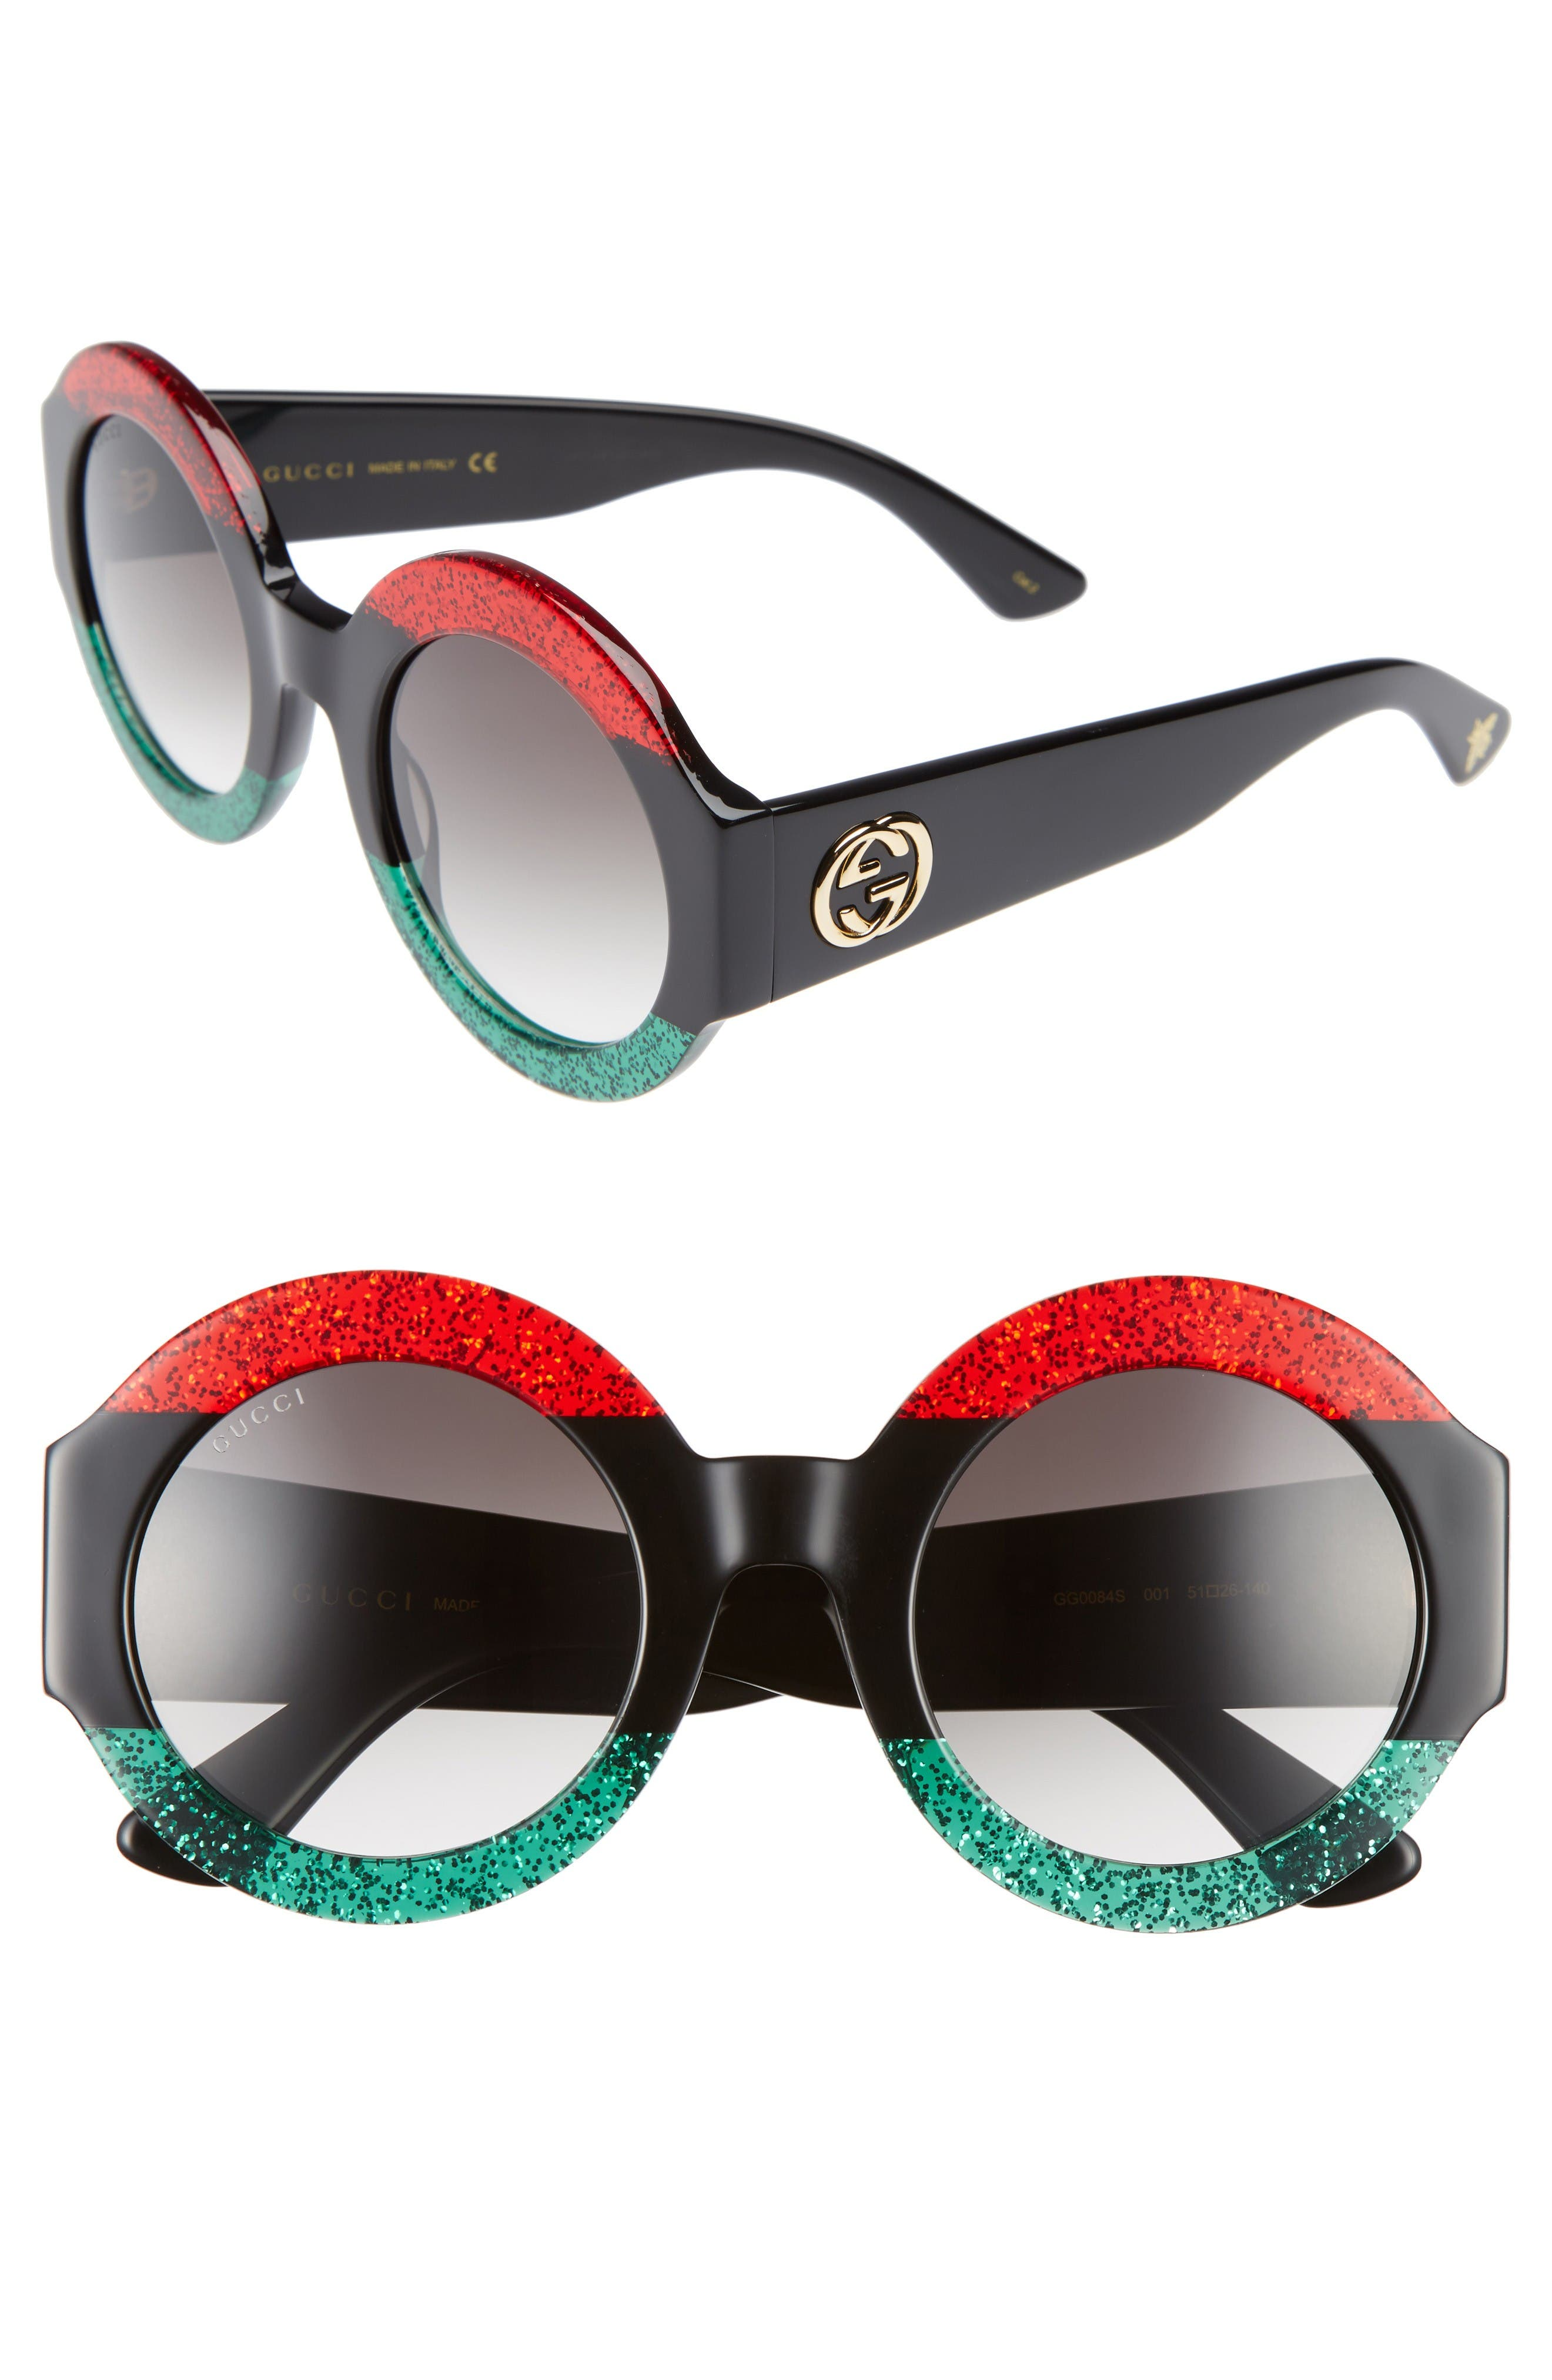 51mm Round Sunglasses,                         Main,                         color, Red Black Green/ Grey